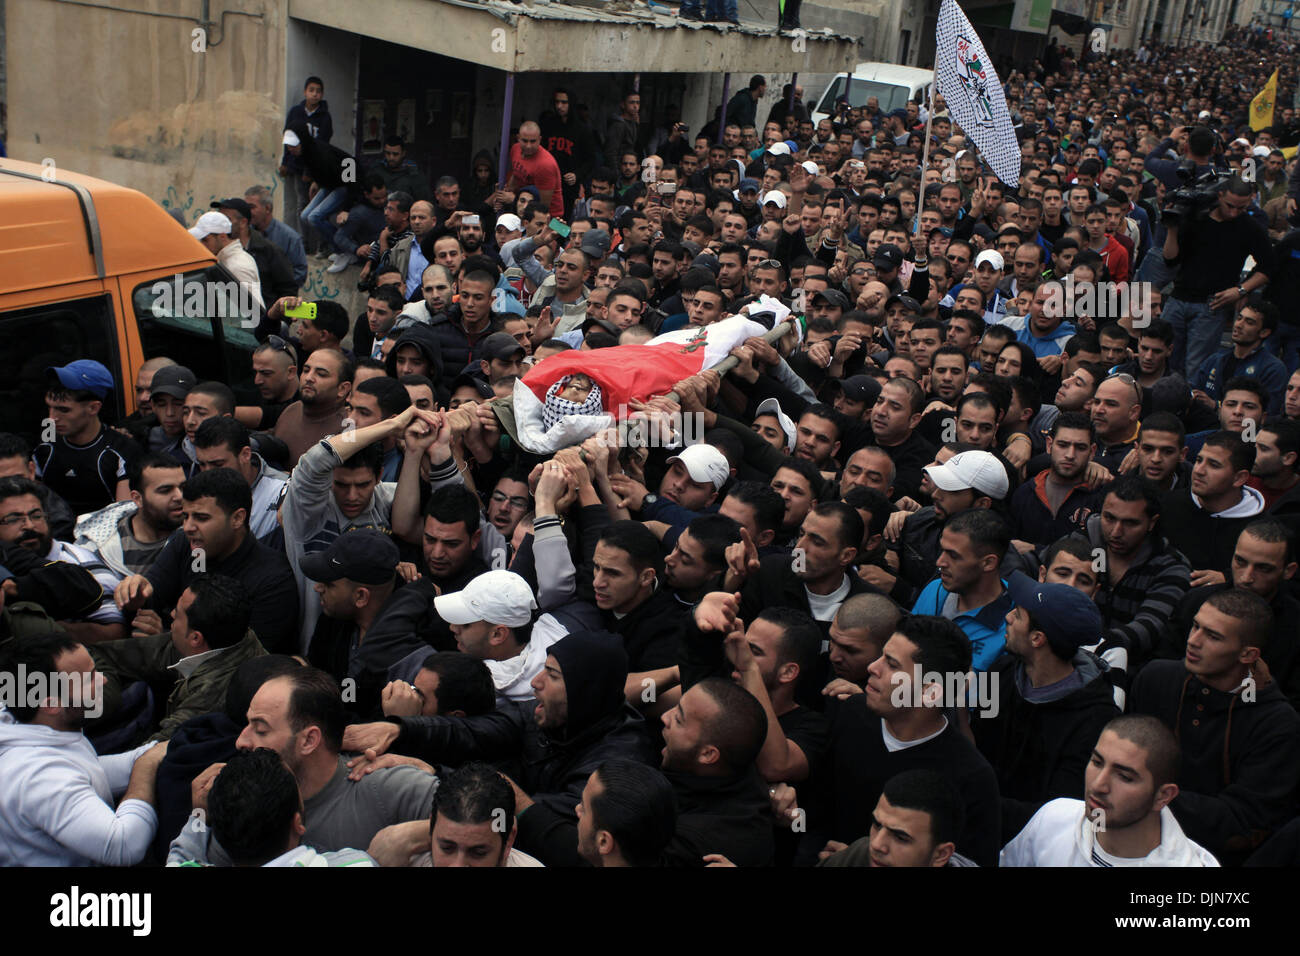 Qalandiya, West Bank, Palestinian Territory, . 29th Nov, 2013. Palestinian mourners carry the body of Mahmud Waji Awad, a Palestinian man who died the previous day of his injuries after he was shot in a 2012 clash with Israeli troops, during his funeral in the West Bank's Qalandiya camp on November 29, 2013 Credit:  Issam Rimawi/APA Images/ZUMAPRESS.com/Alamy Live News - Stock Image